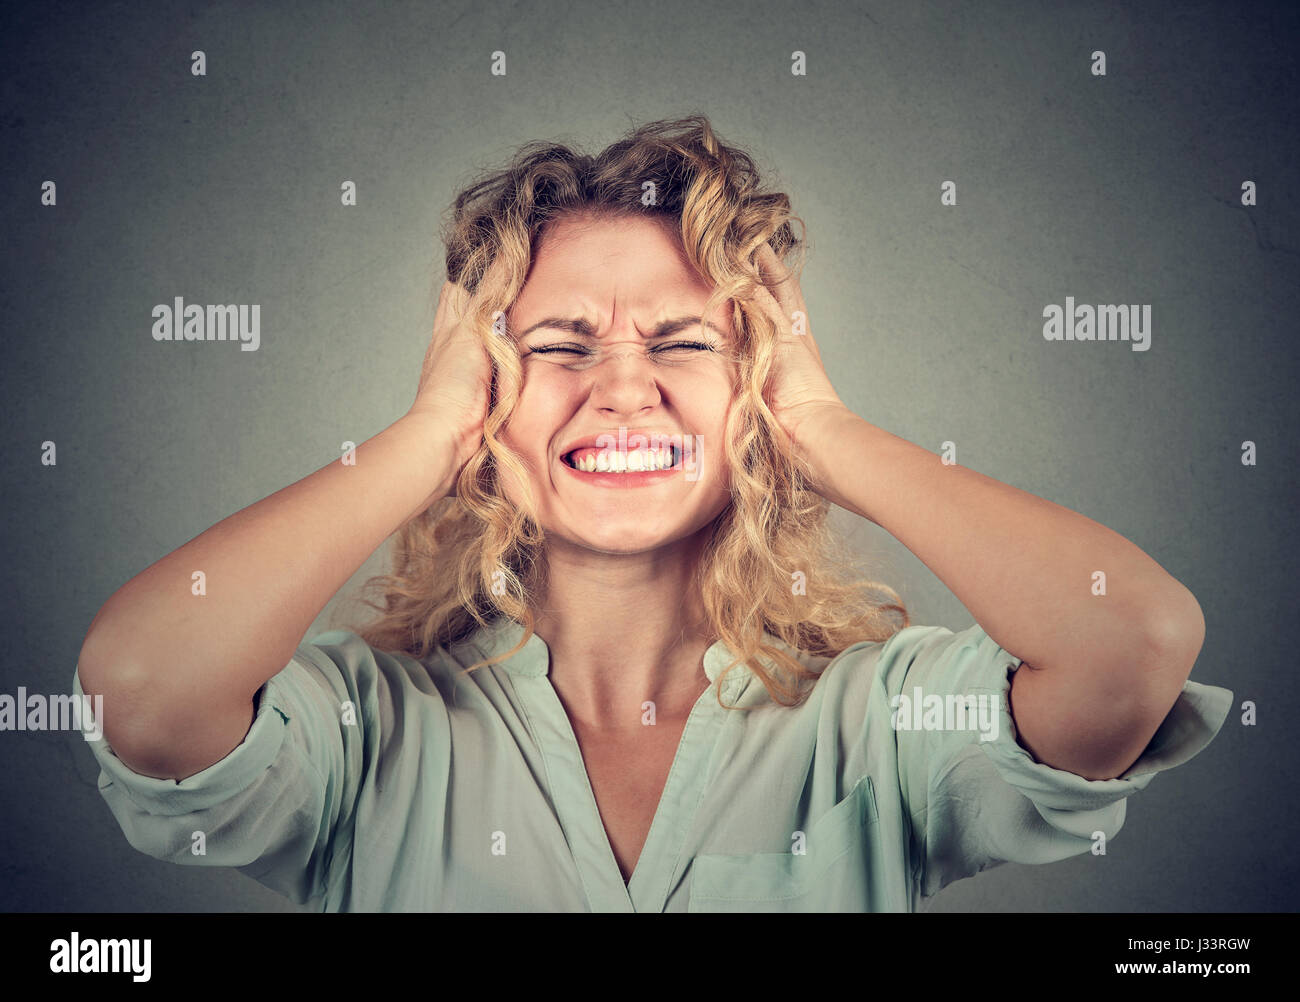 Stressed woman upset frustrated - Stock Image